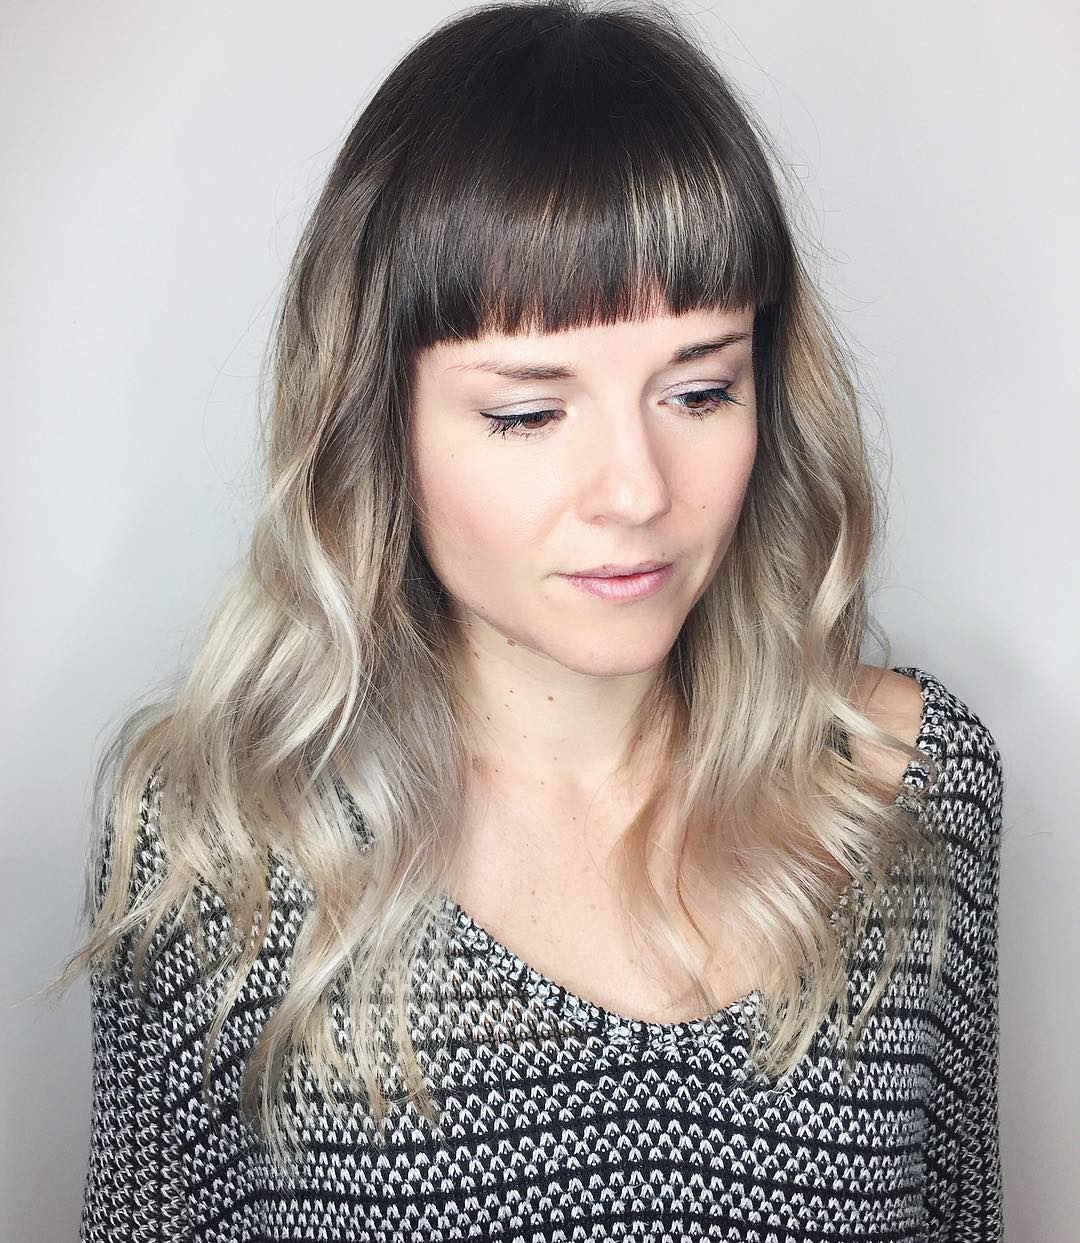 Polished Wavy Layered Cut with Blunt Baby Bangs and Cool Blonde Color Melt Long Hairstyle